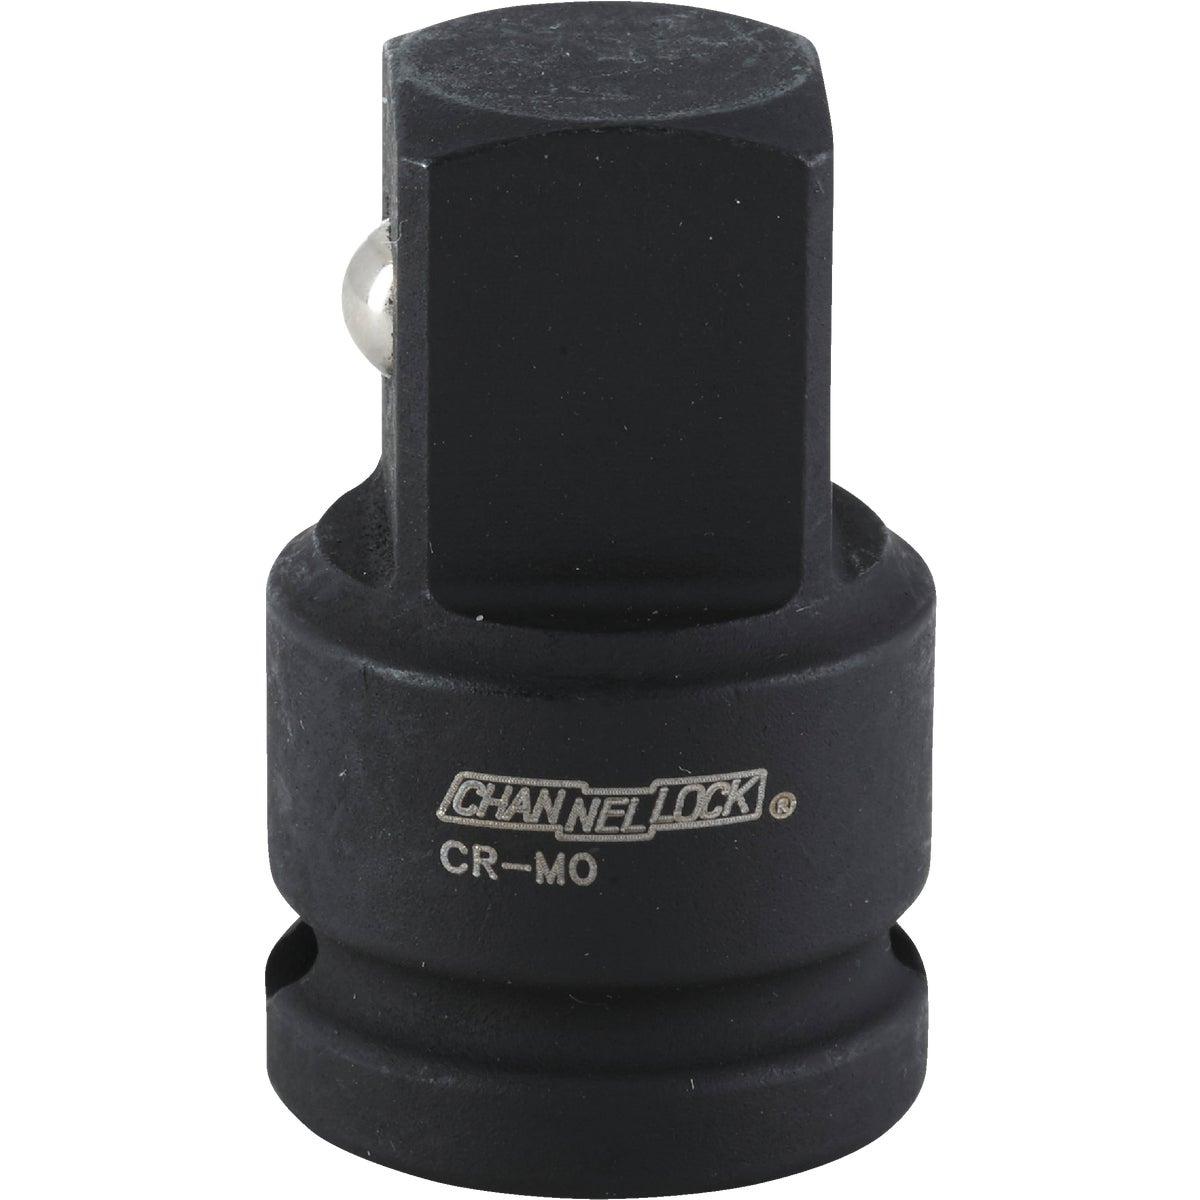 1/2X3/4 ADAPTER - 35293 by Apex Tool Group